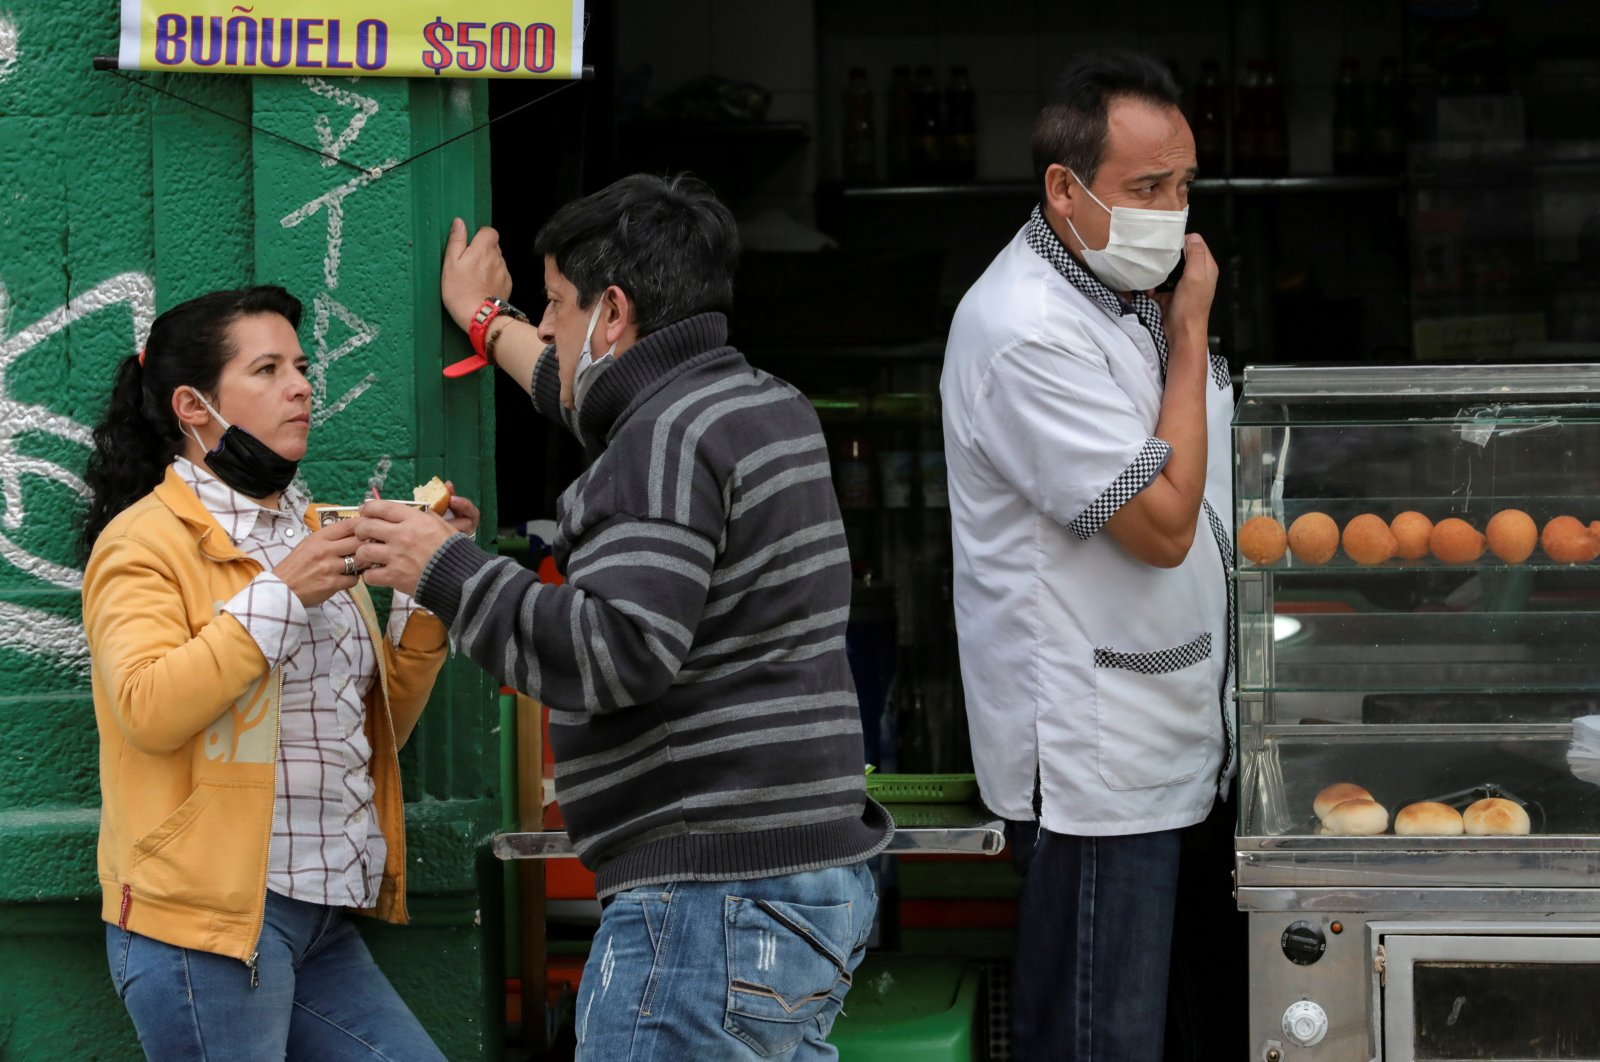 People with face masks converse outside a cafeteria during the government-mandated quarantine to lower the rates of contagion from the coronavirus outbreak, in Bogota, Colombia, July 27, 2020. (Reuters Photo)